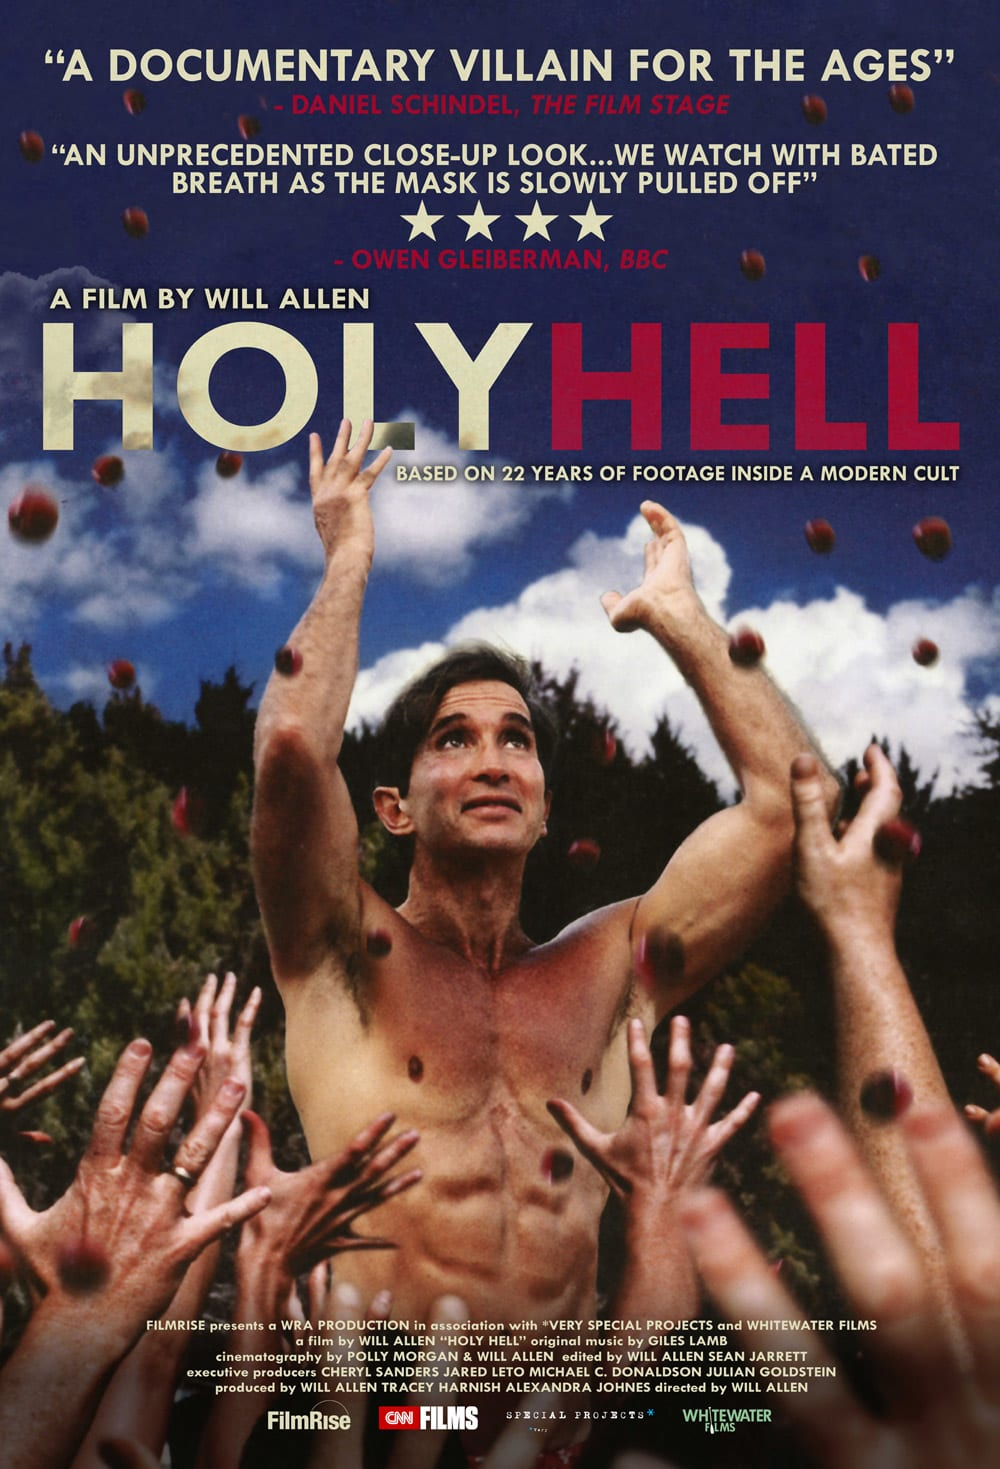 Holy Hell Documentary Shows How Cult Leader Raped Followers for